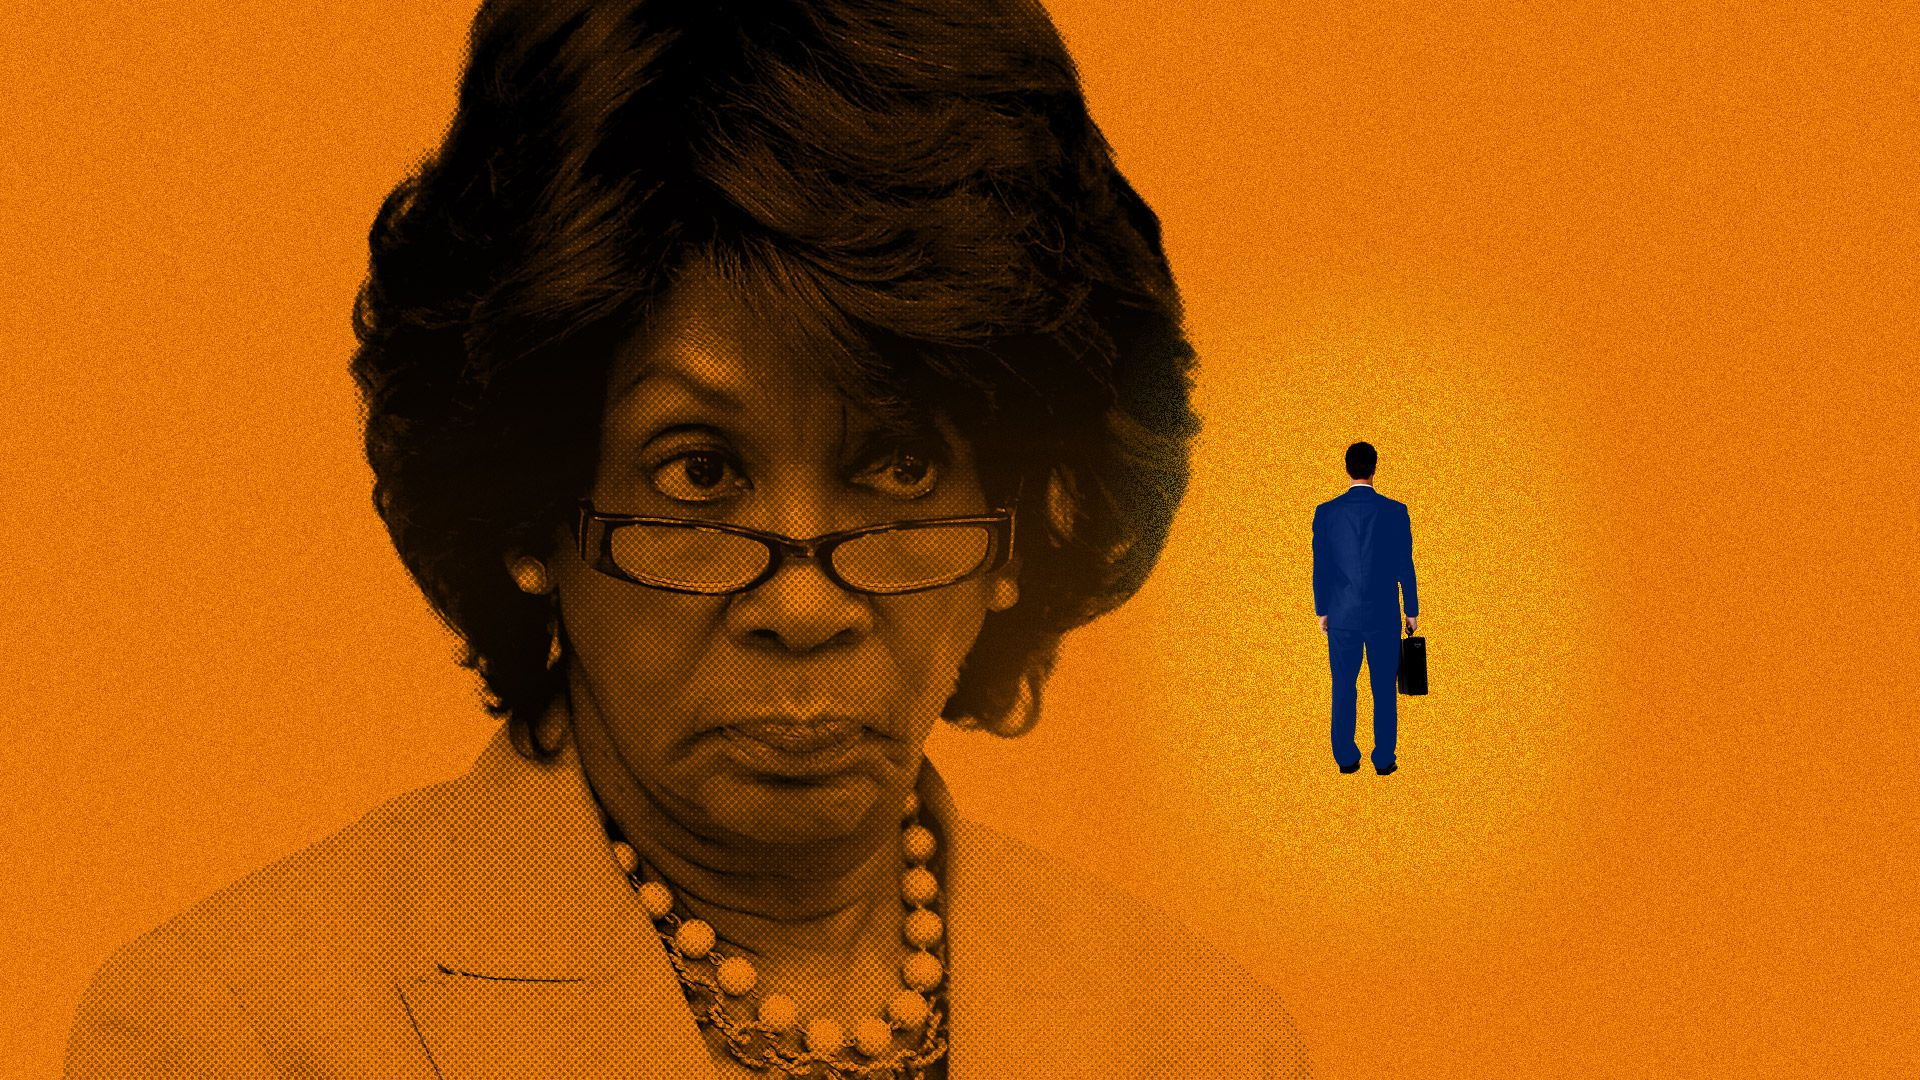 Illustration of Maxine Waters looking at a banker